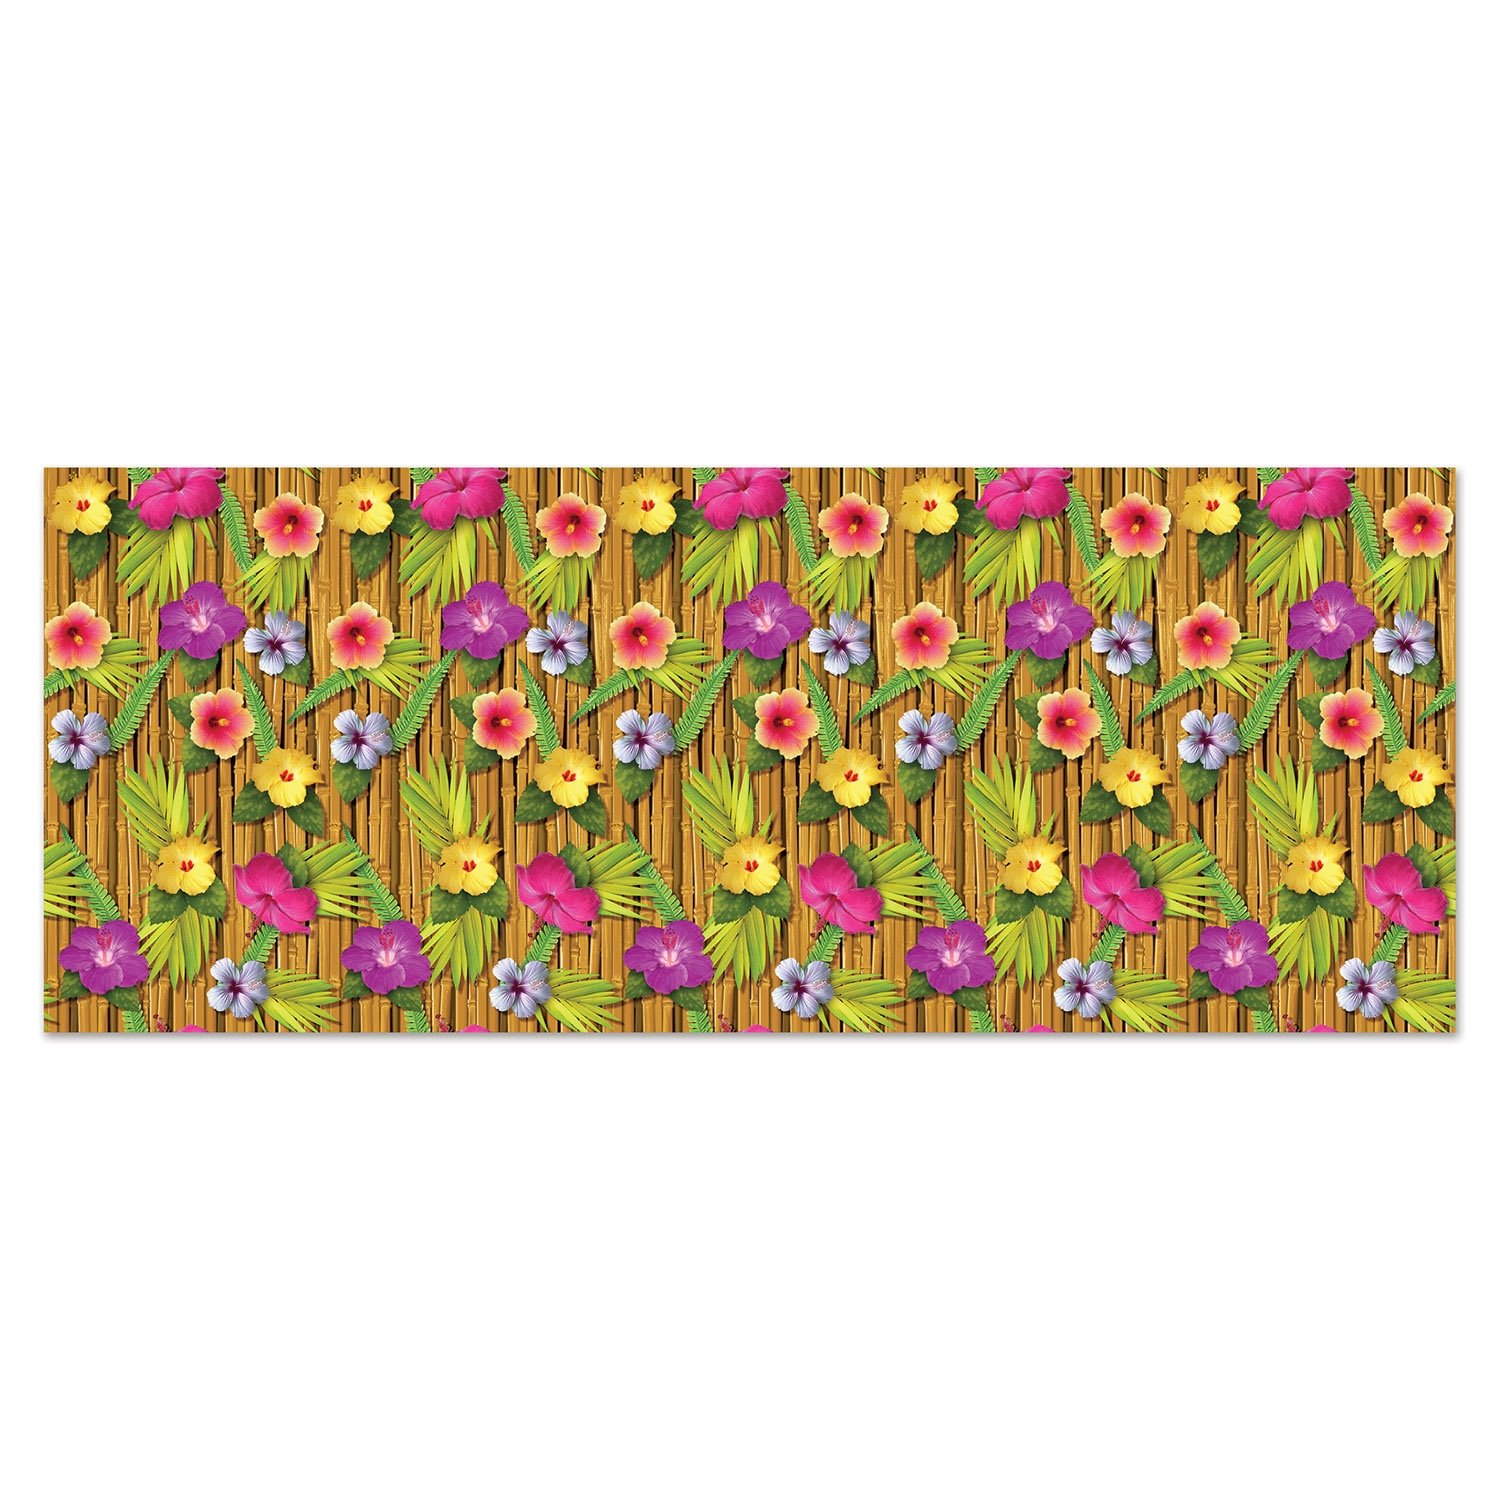 Beistle 52128 Luau Backdrop, 4' x 30', Multicolored by Beistle